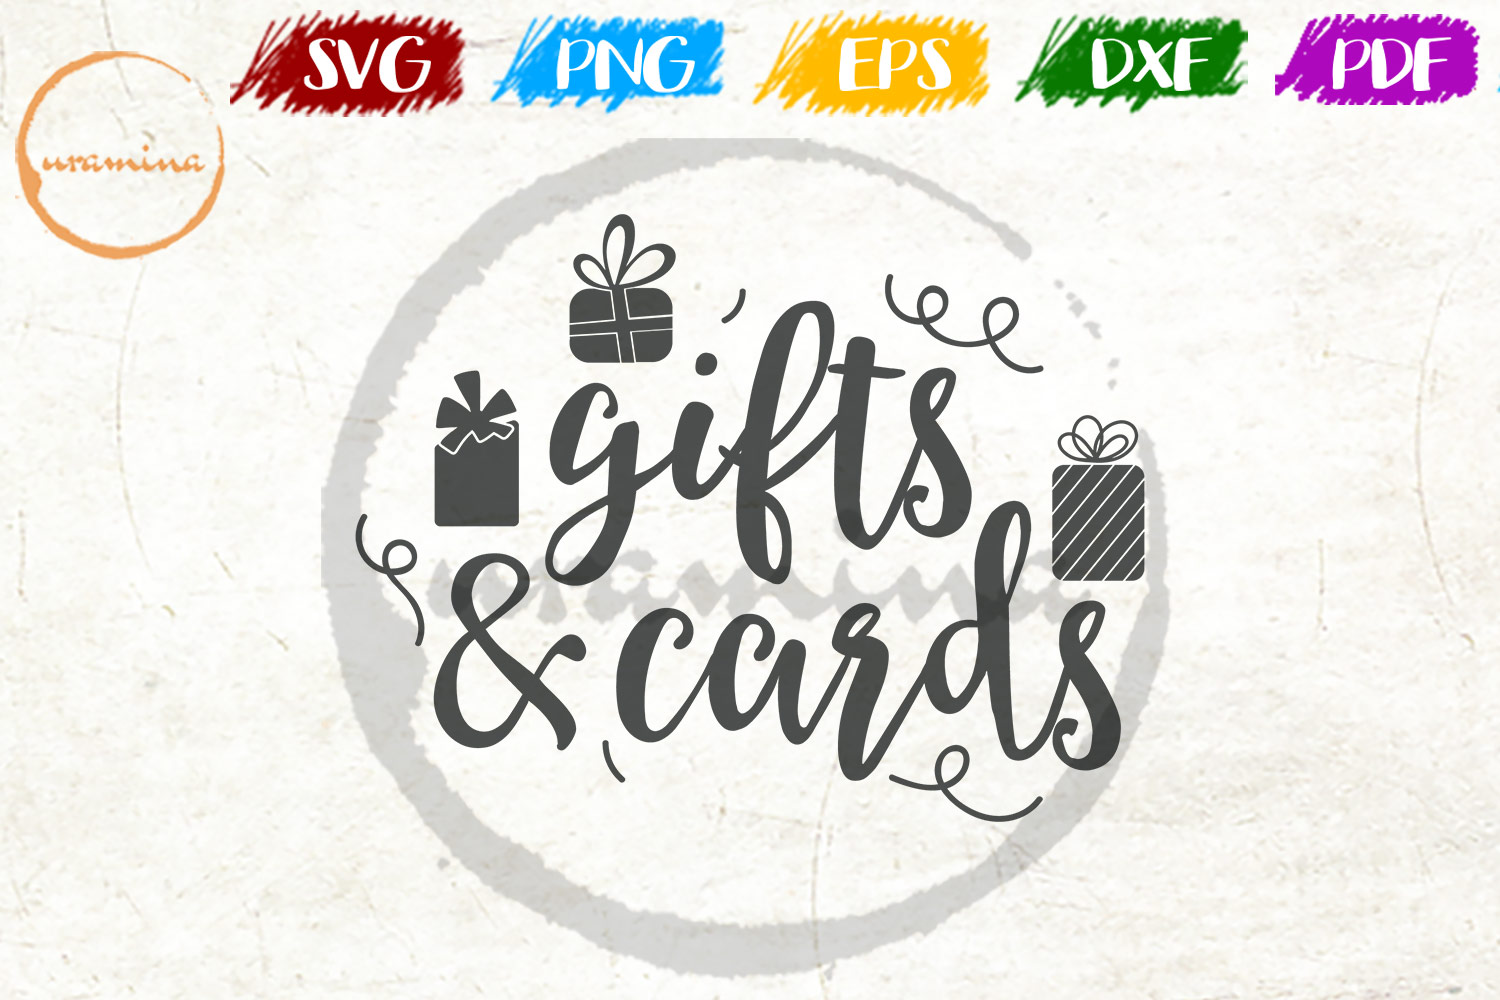 Download Free Gifts And Cards Graphic By Uramina Creative Fabrica for Cricut Explore, Silhouette and other cutting machines.